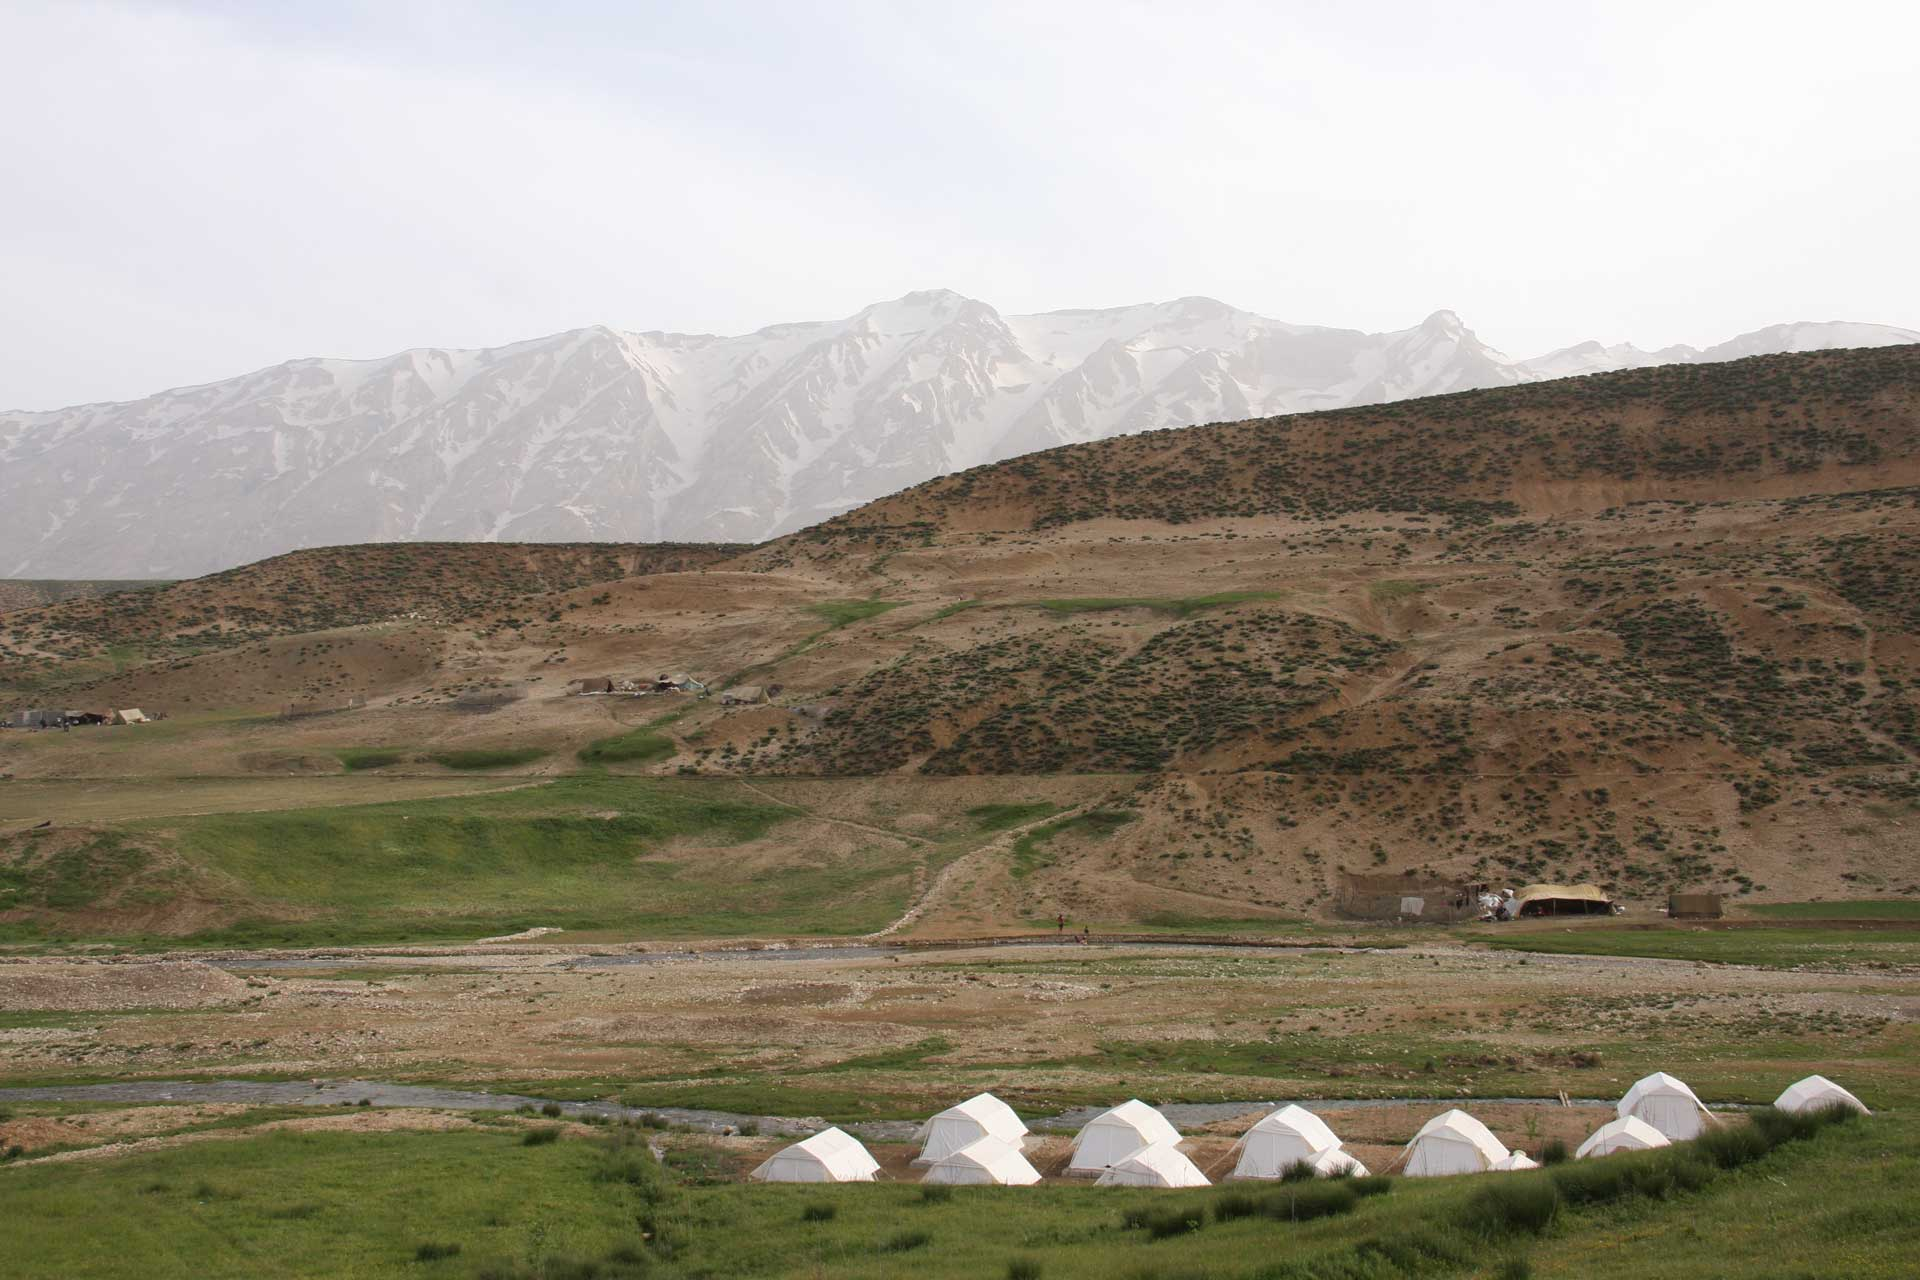 white camps of nomads in nature